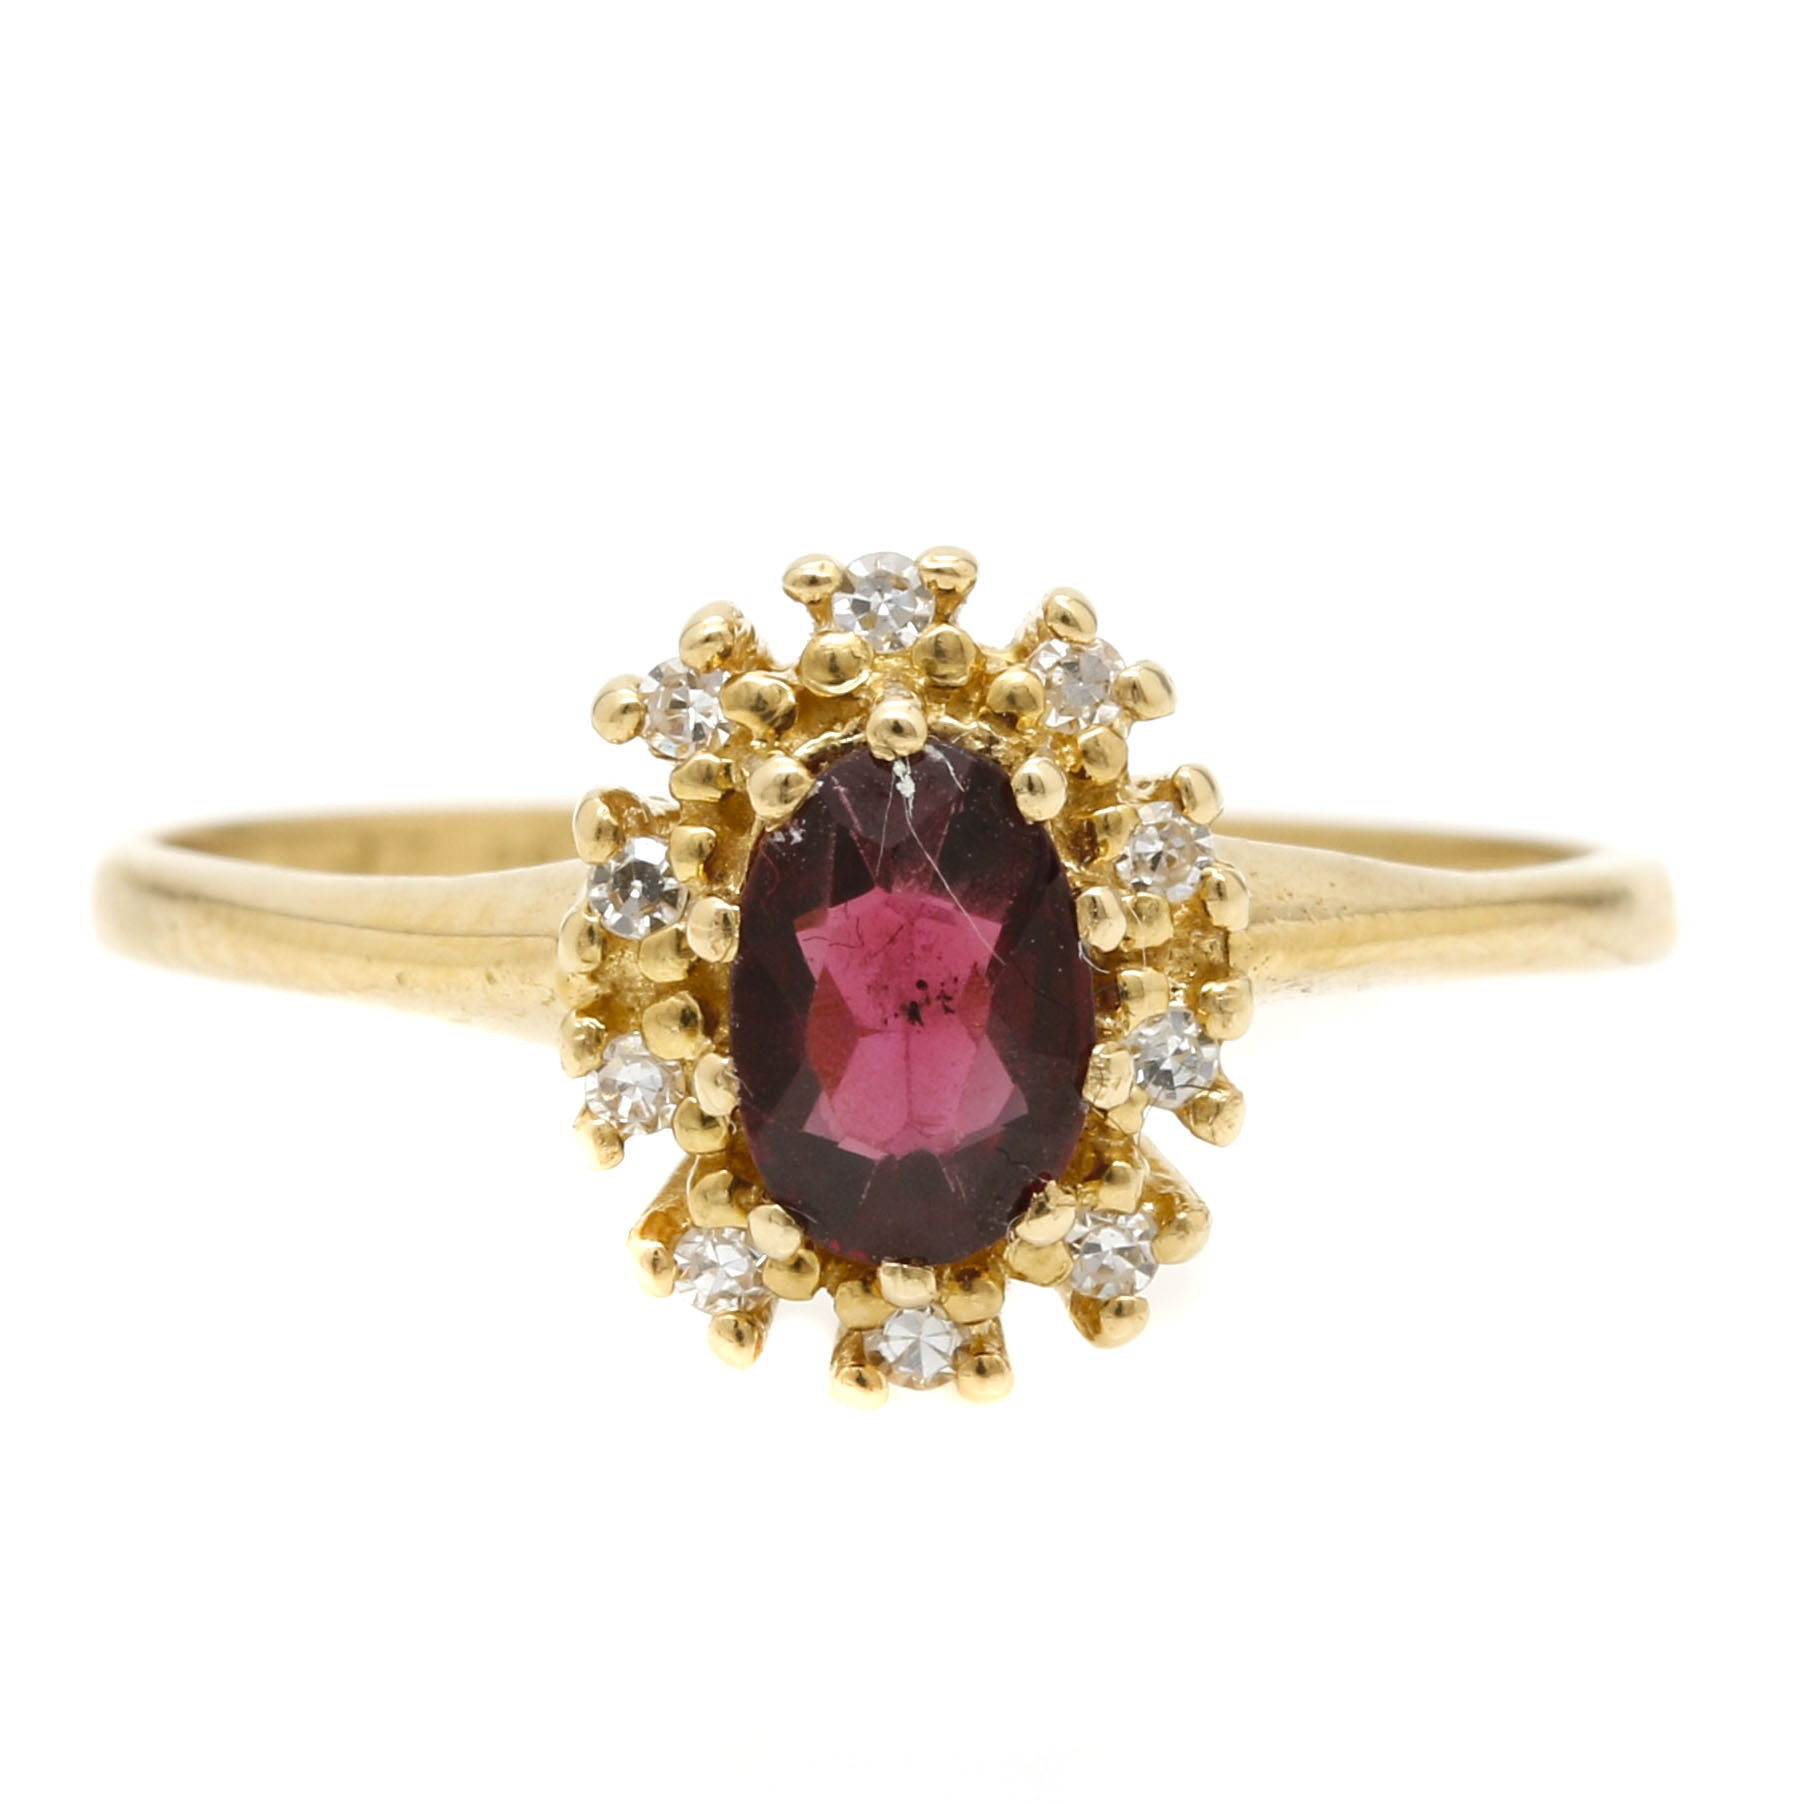 18K Yellow Gold Garnet and Diamond Ring